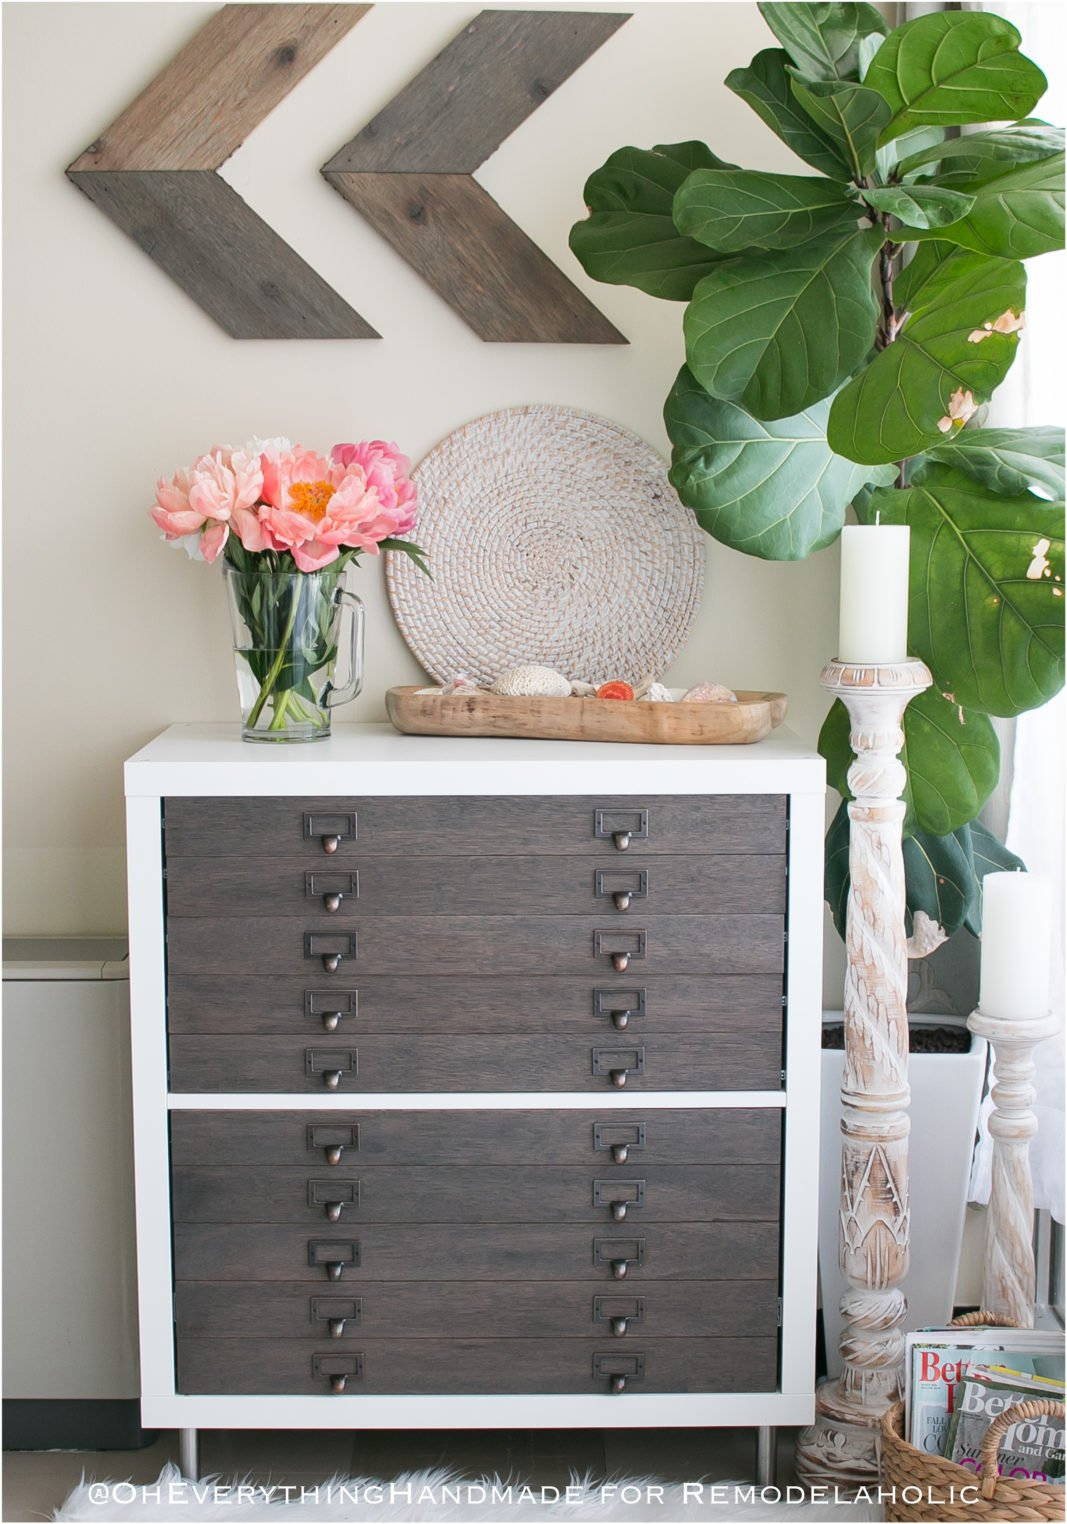 Ikea Flat Filing Cabinet Tutorial & Video